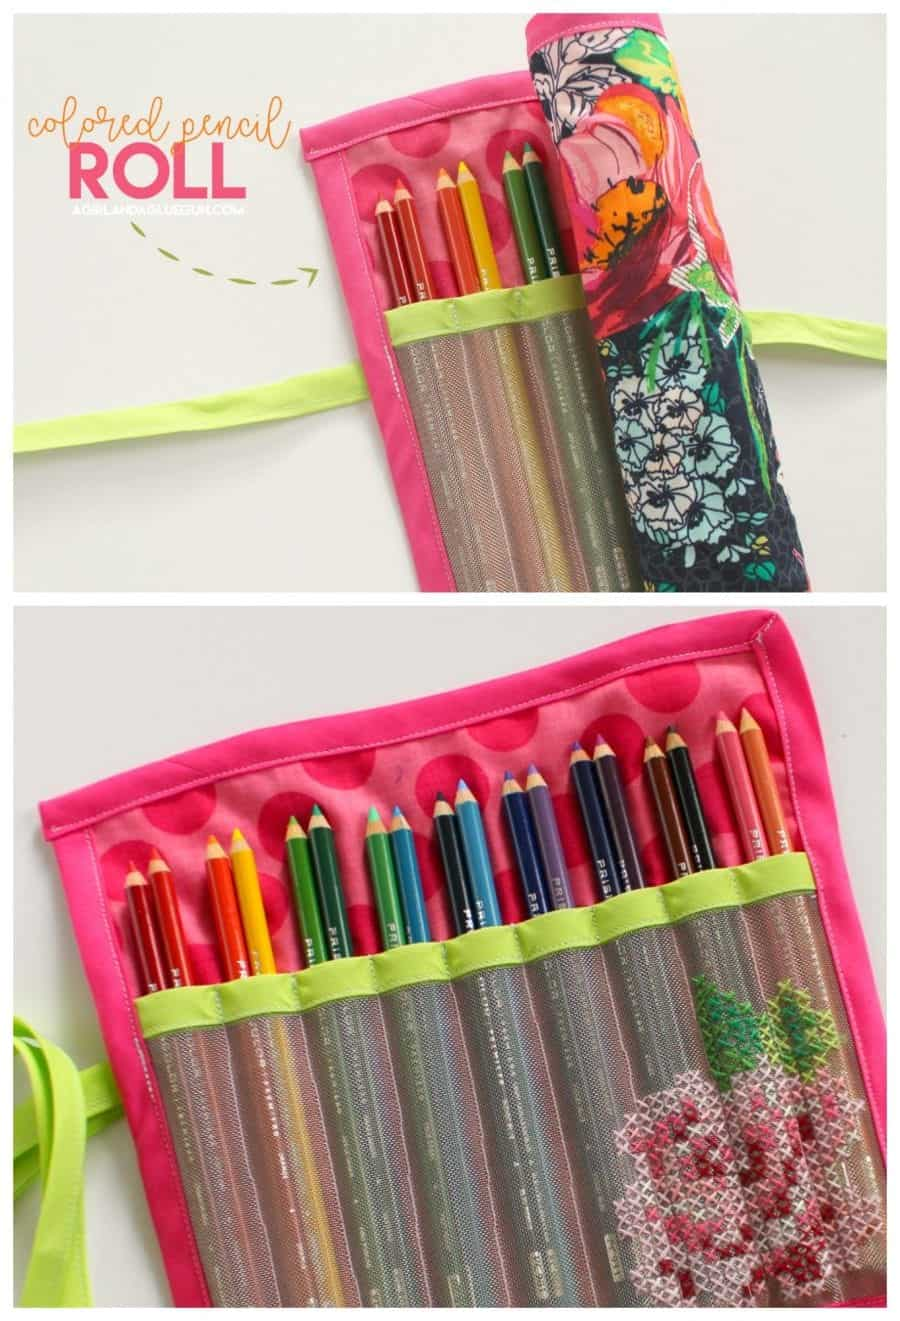 stitch-and-sew-this-totally-cute-and-fun-roll-to-hold-your-colored-pencils-or-paint-brushes